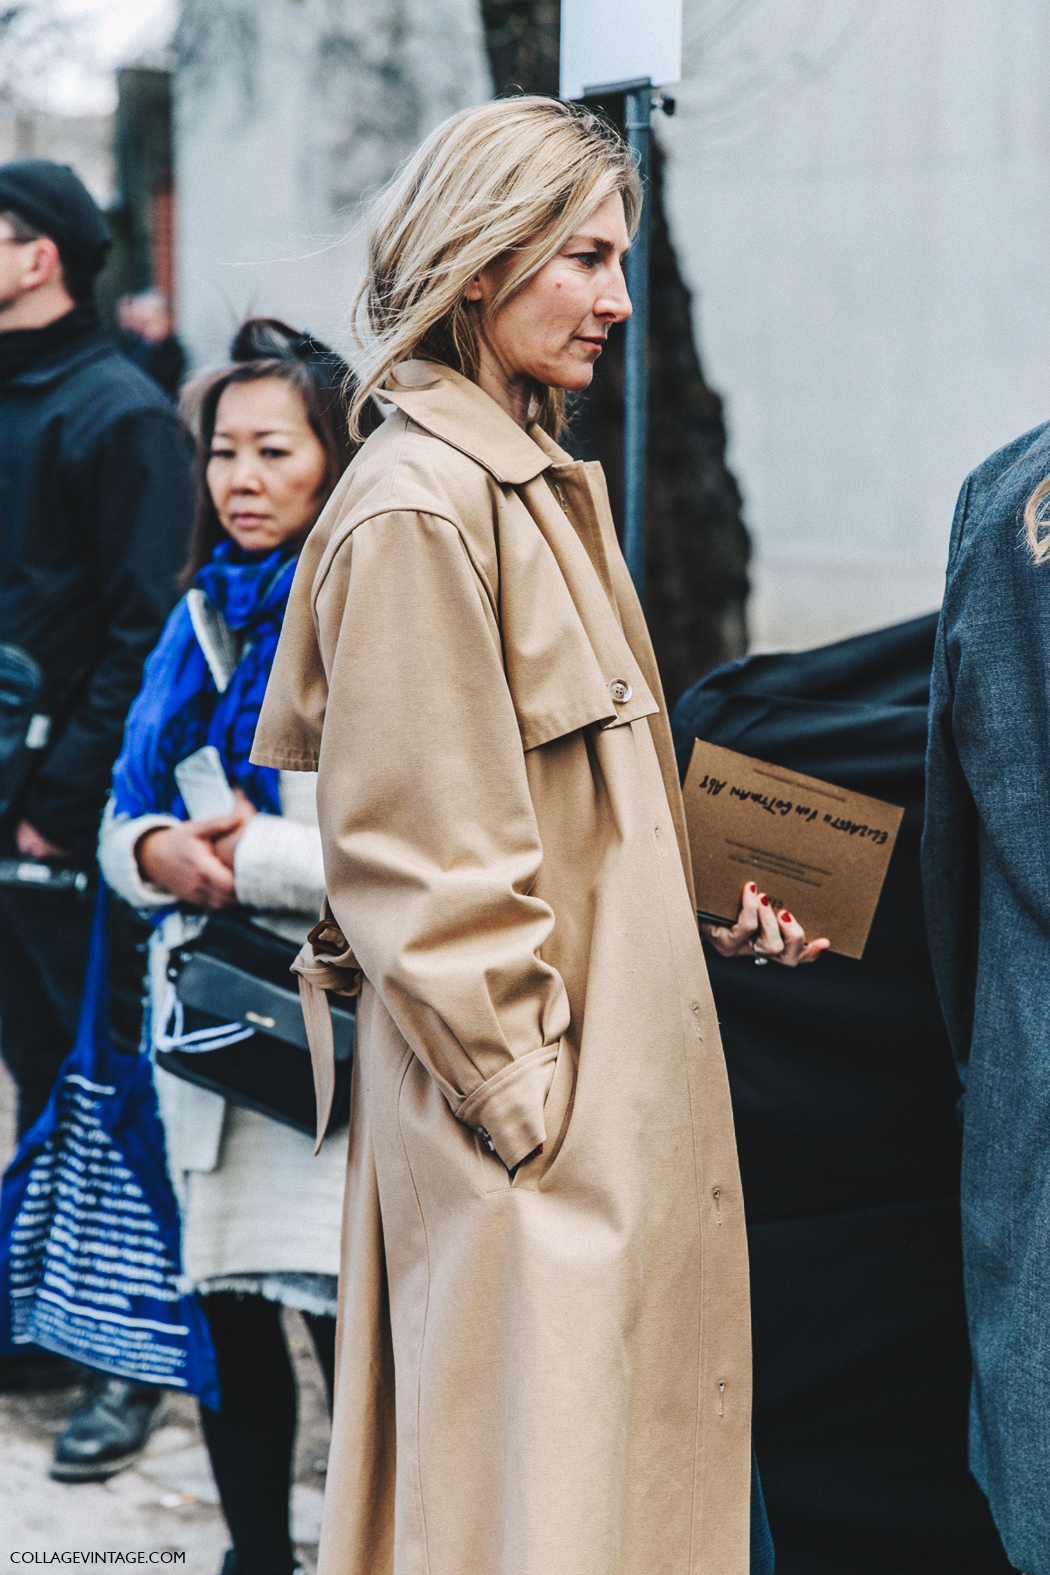 PFW-Paris_Fashion_Week_Fall_2016-Street_Style-Collage_Vintage-Elisabeth_Von-Chloe_Bag-TRench-4